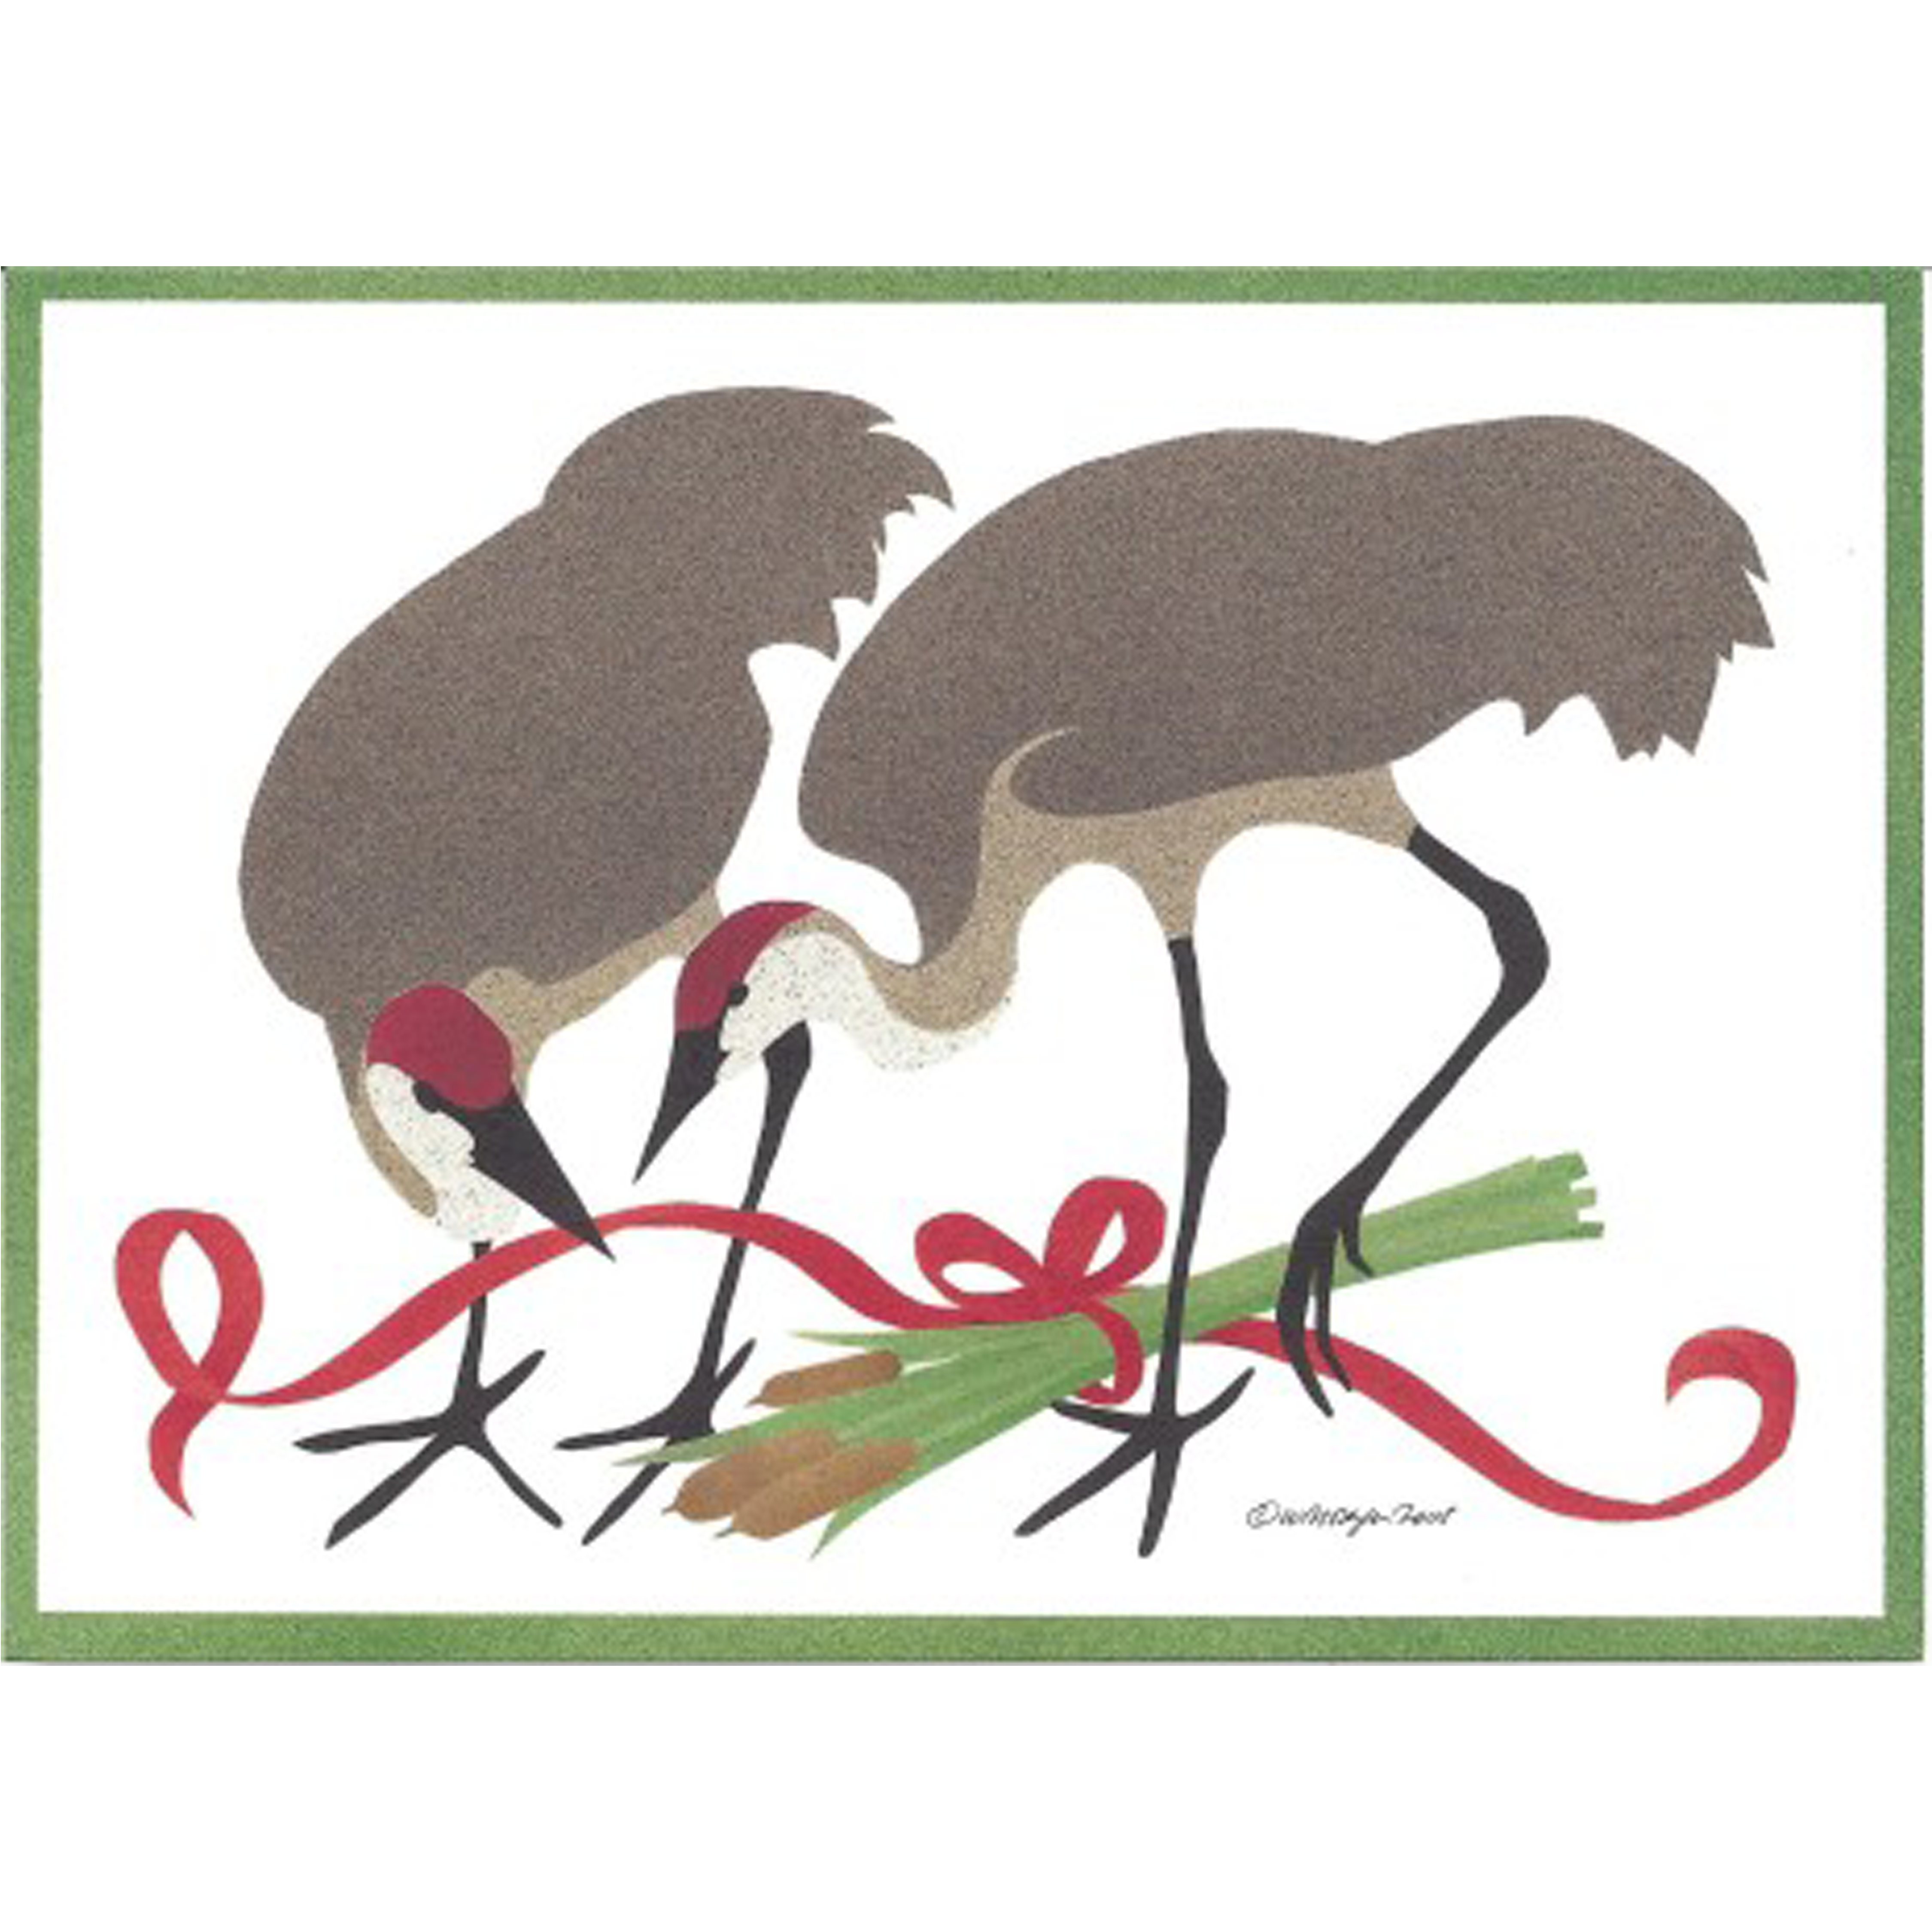 Sandhill Crane Holiday Cards – Environment for the Americas